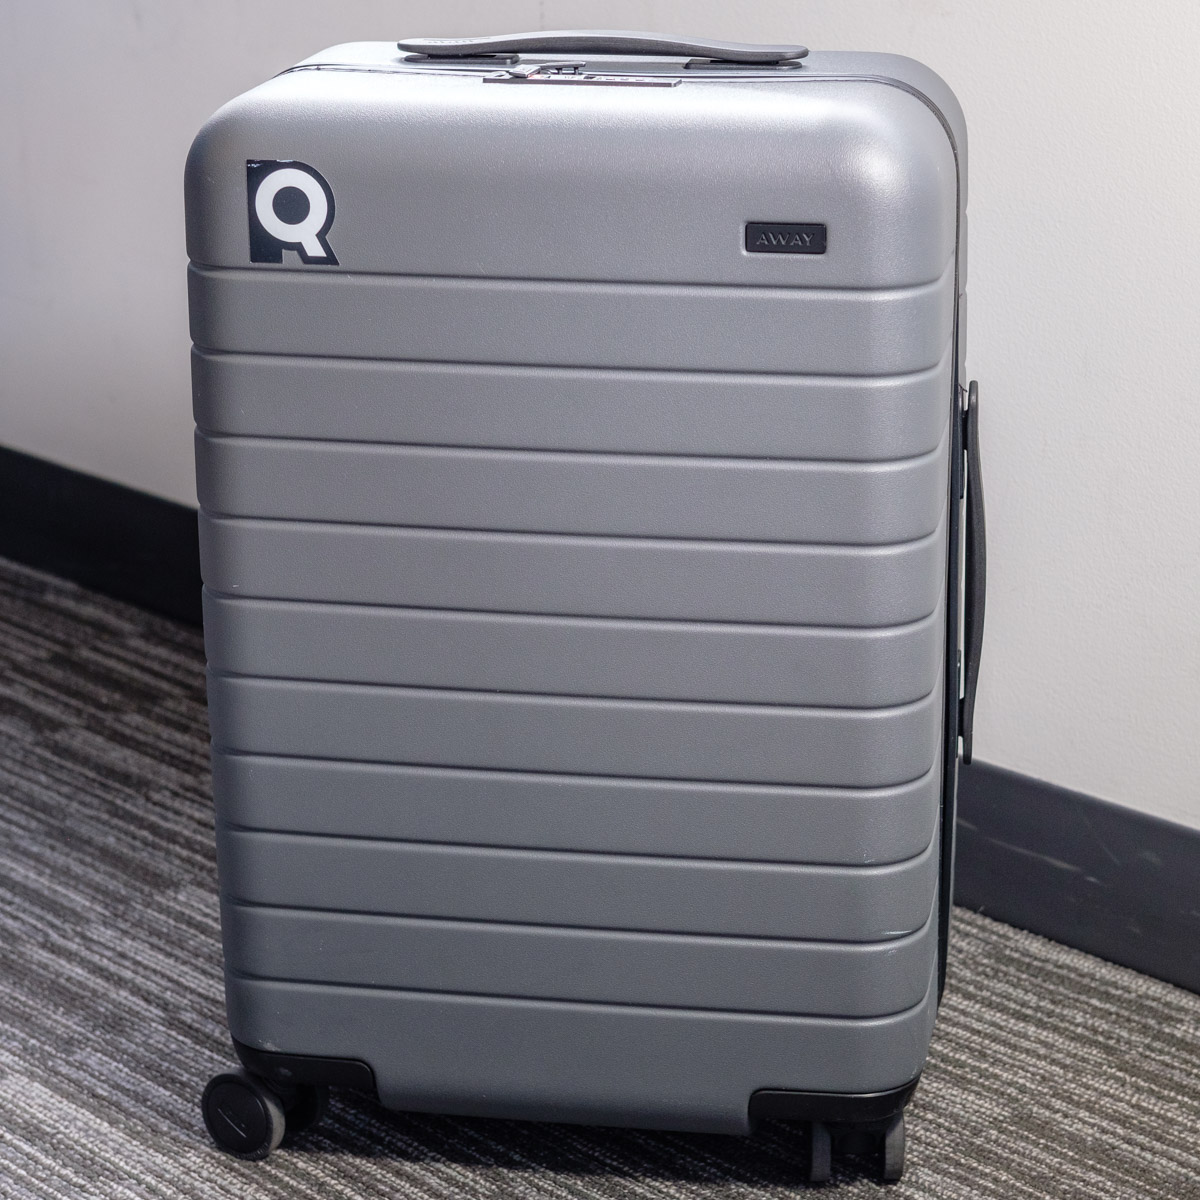 f2d5b19c8 Away Luggage Review. The ultimate travel companion. Away Bigger Carry-On